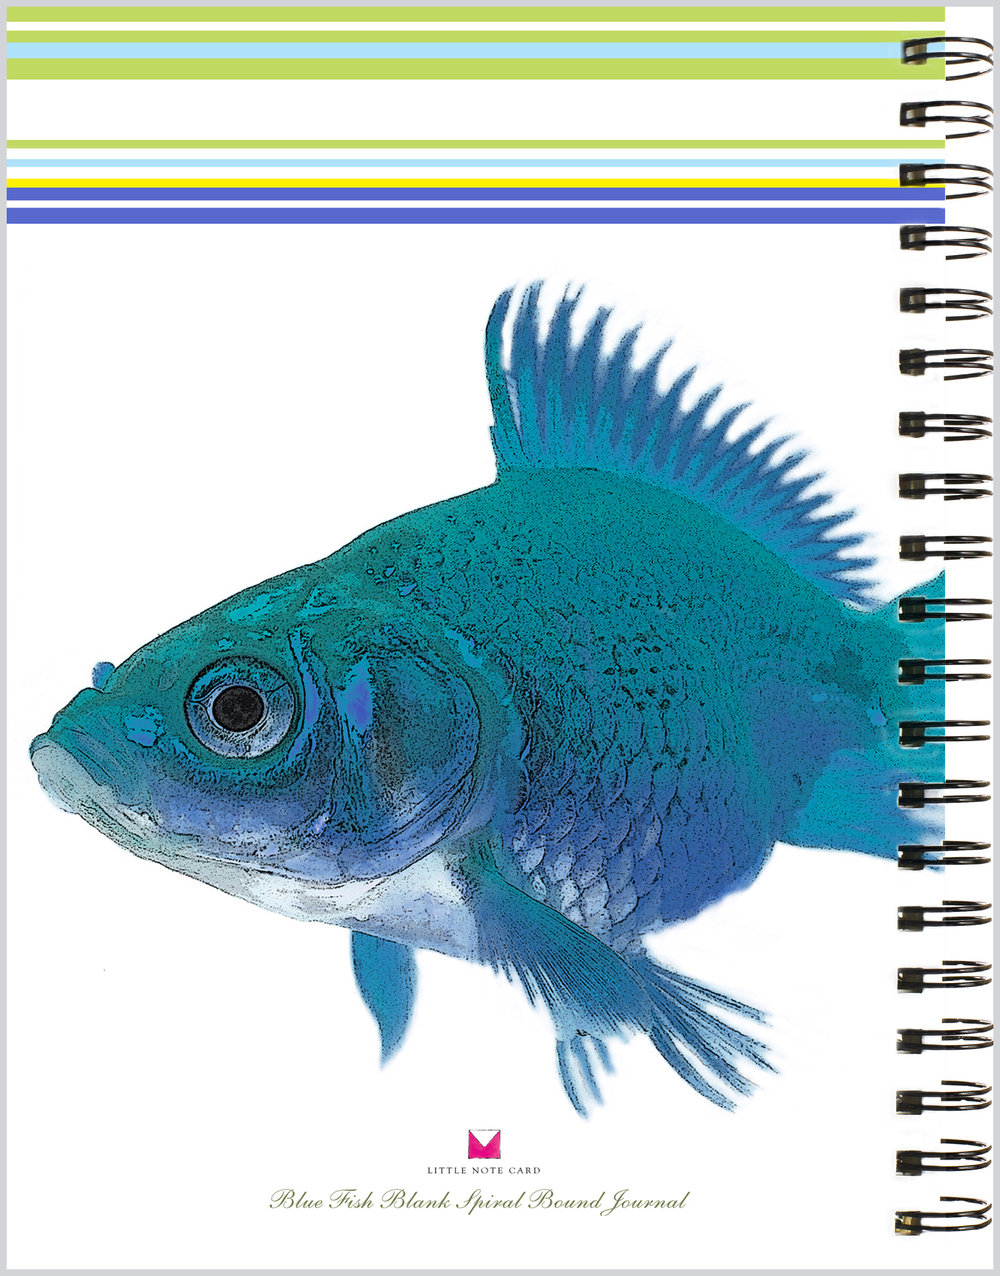 LittleNoteCard_BlueFish_BlankJournal